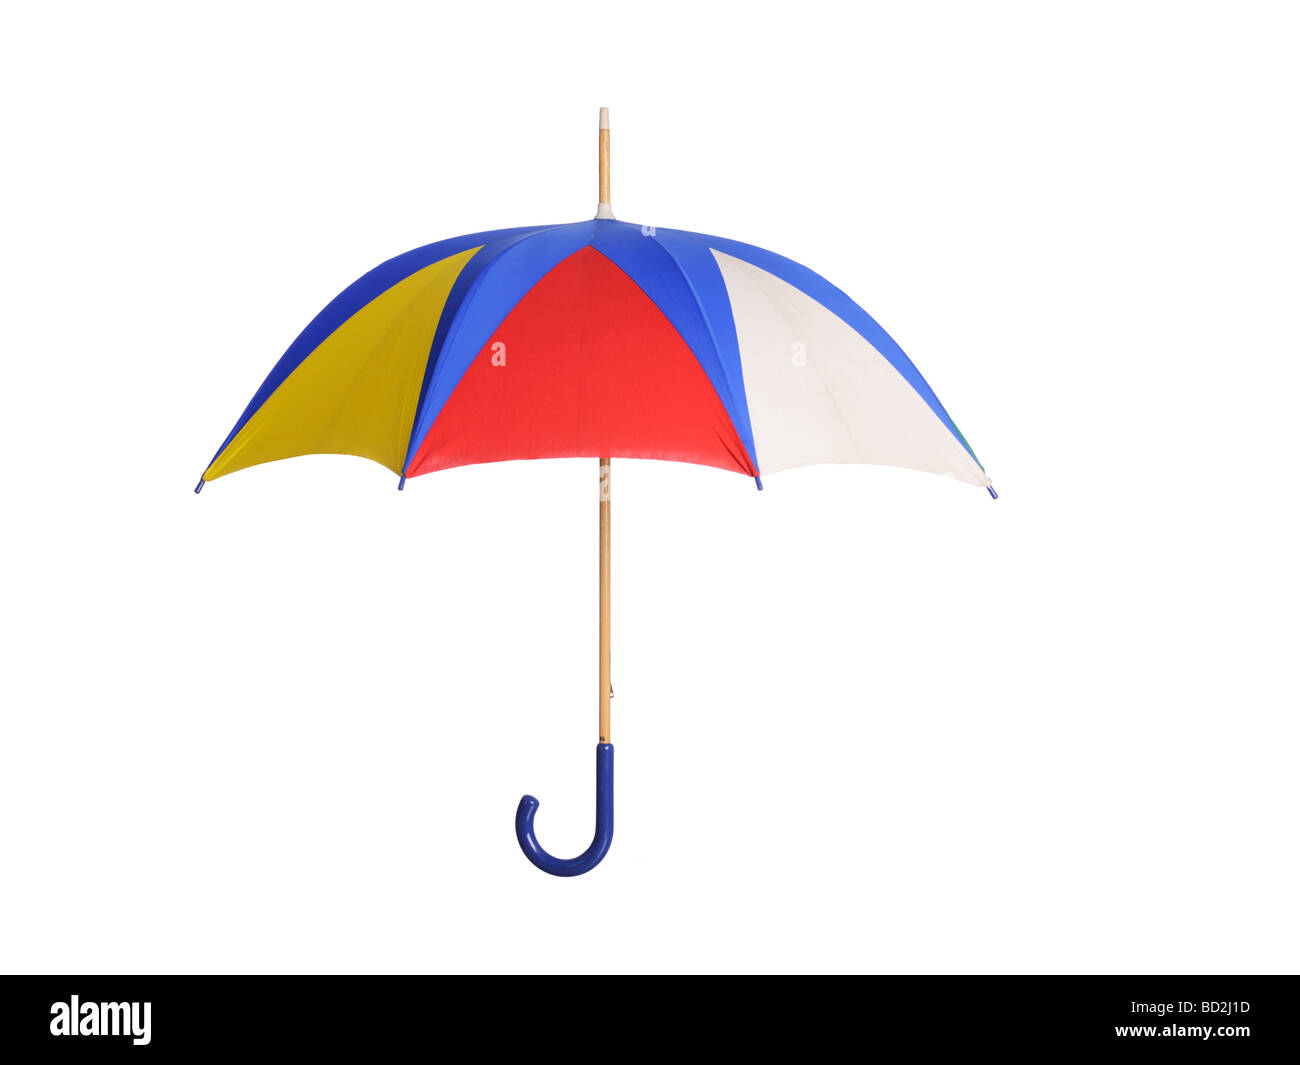 Colourful open Umbrella - Stock Image